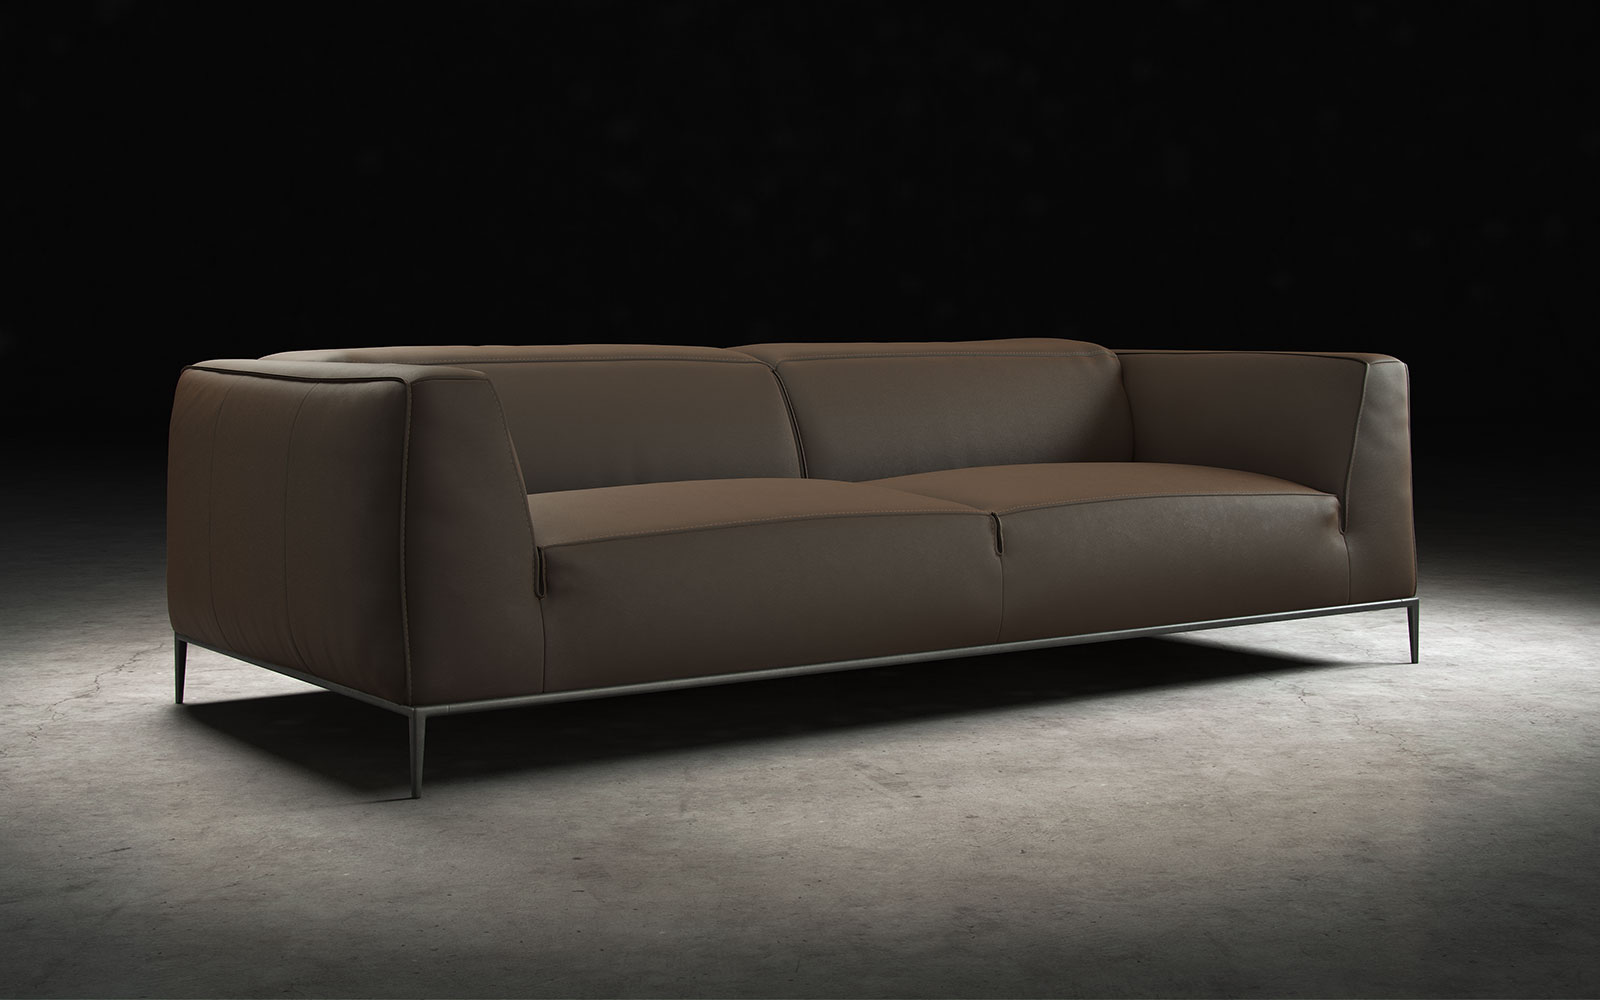 Incroyable Fletcher Sofa Fendi By Modloft (Modloft)